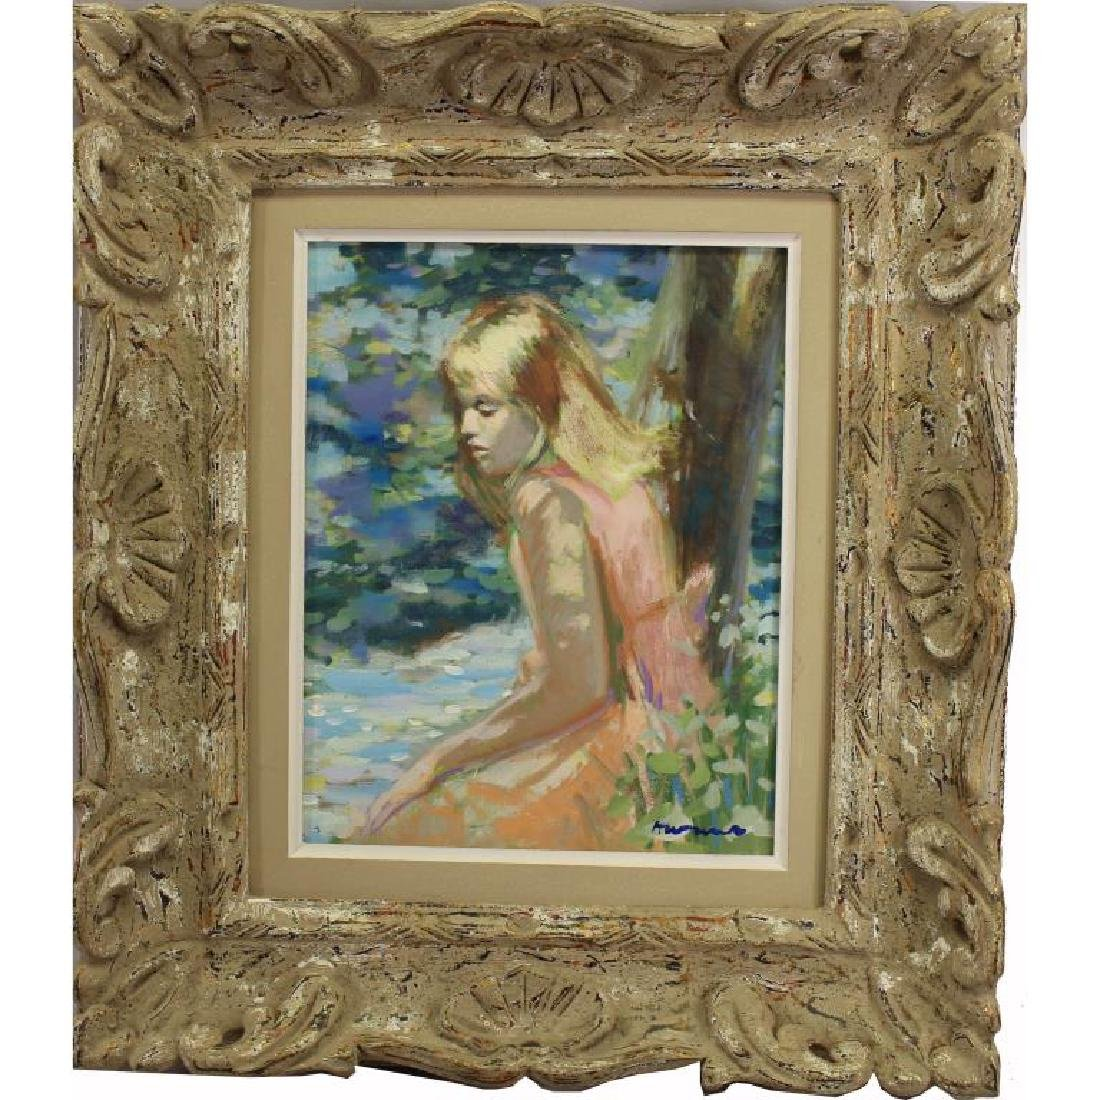 German School Impressionist Painting of Young Girl